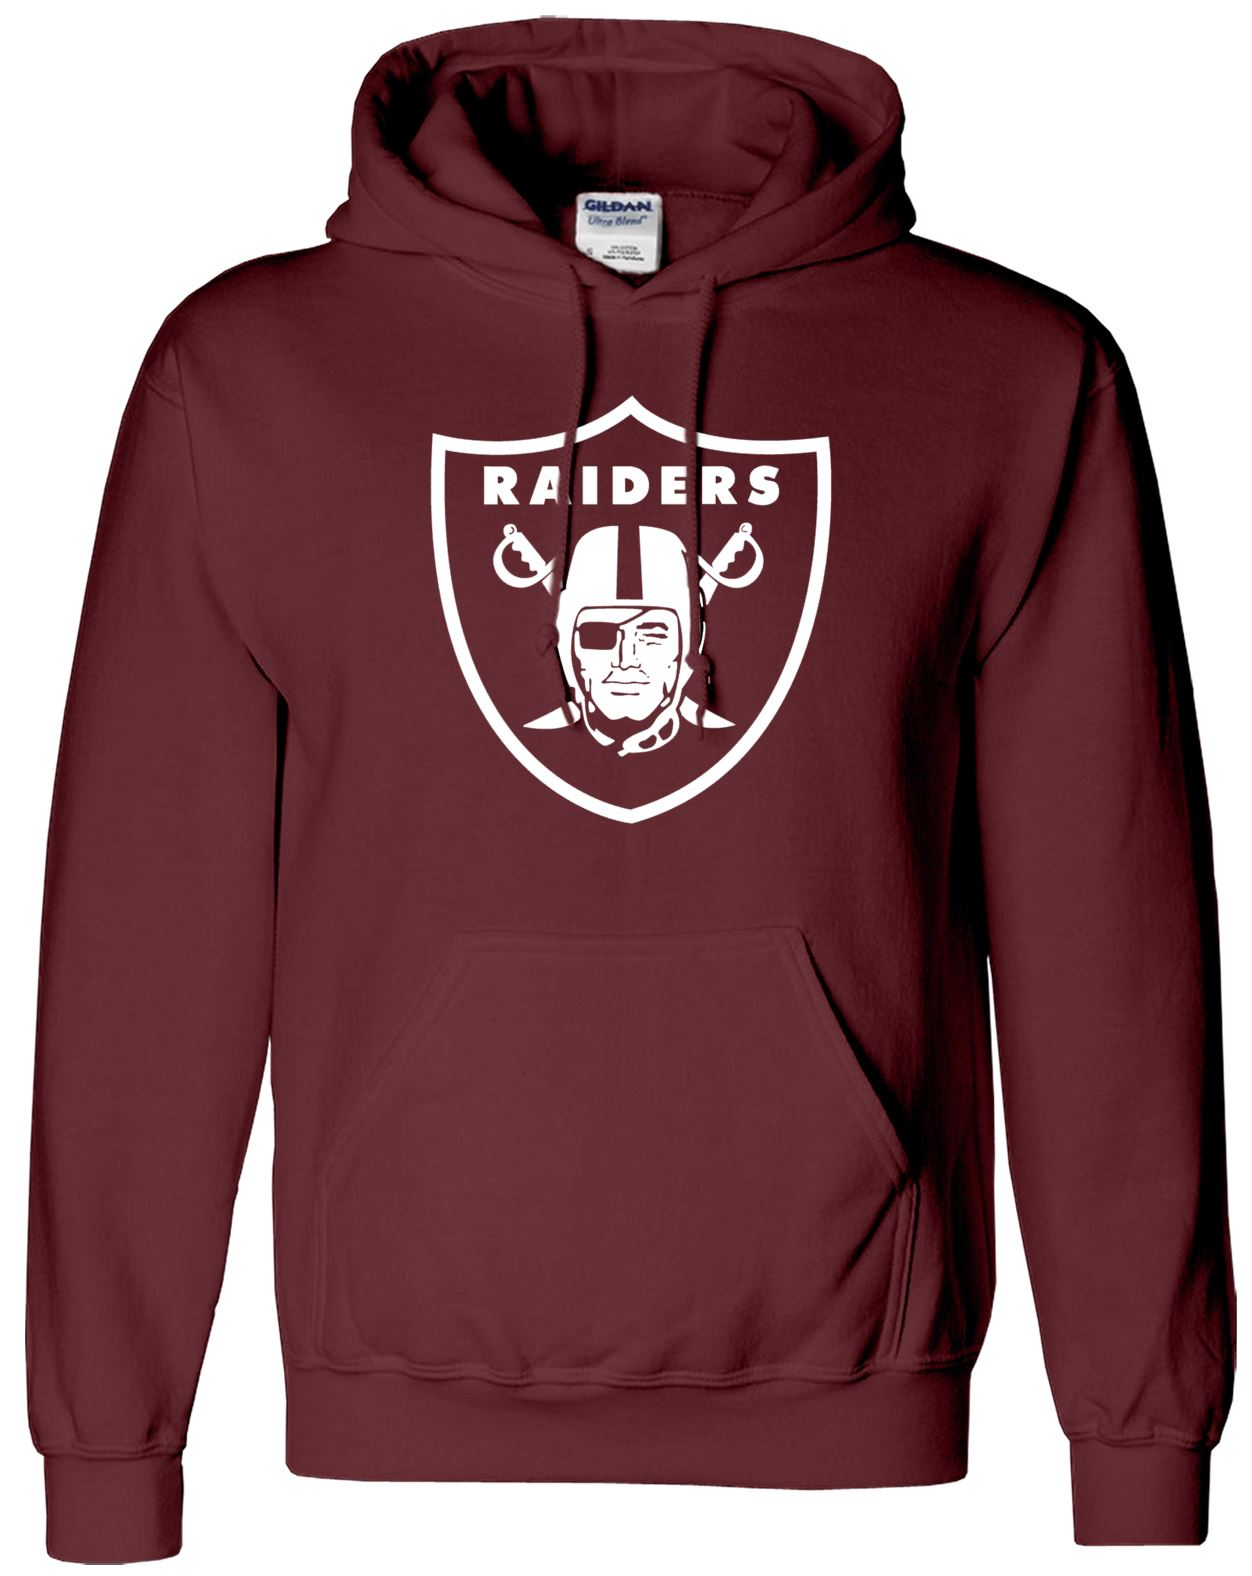 Represent your favourite team with authentic Nike NFL gear including football jerseys, clothing, shoes and more from Nike UK. Order NFL gear online.